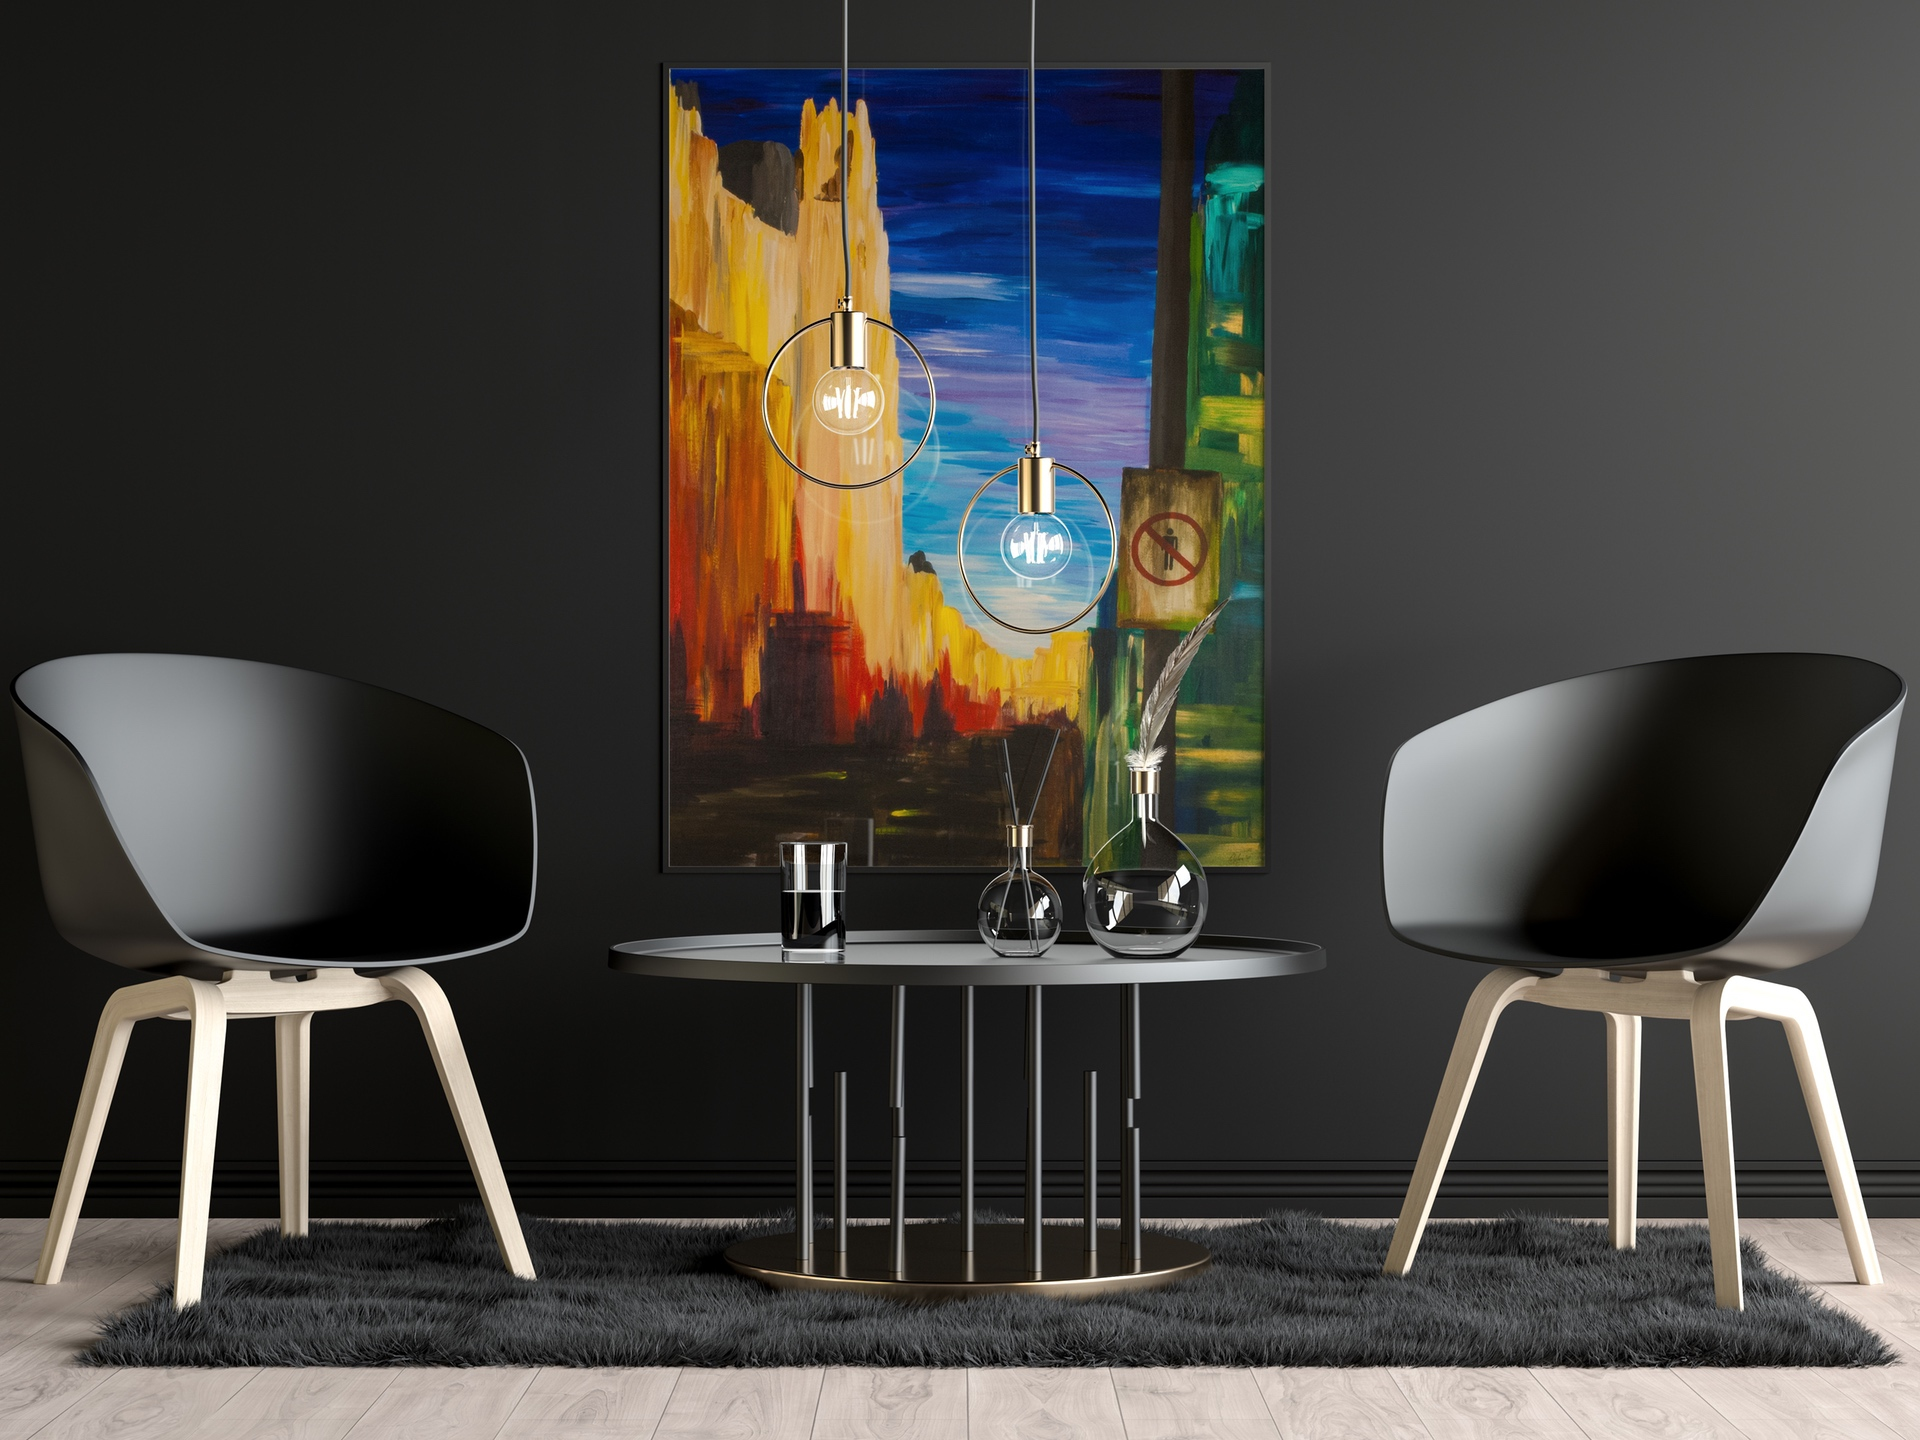 Gran Via without Humans - Limited edition giclée print by Pako Campo